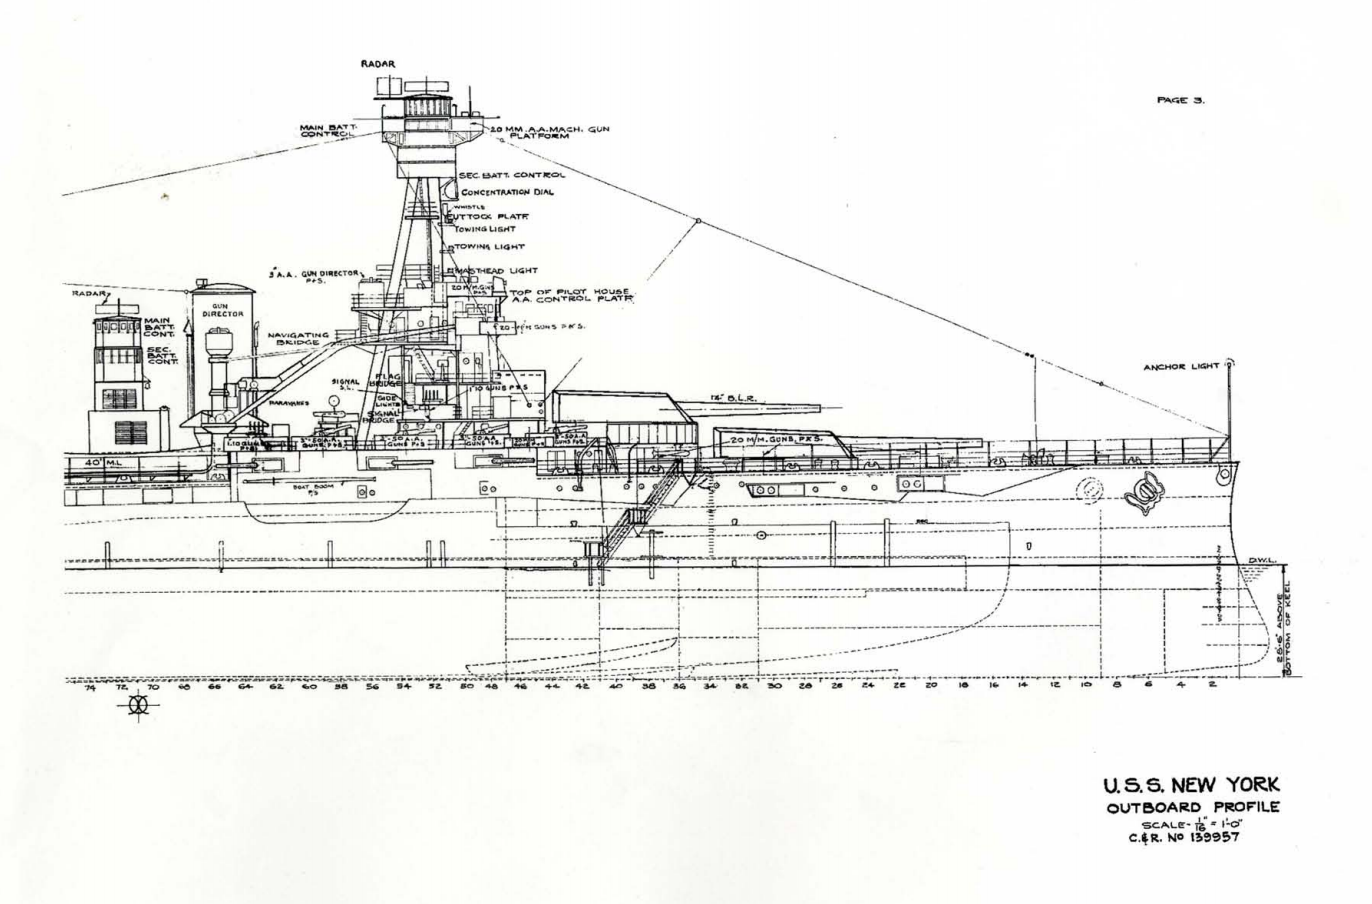 uss new york bb34 outboard profile plans drawings blueprints  http://maritime org